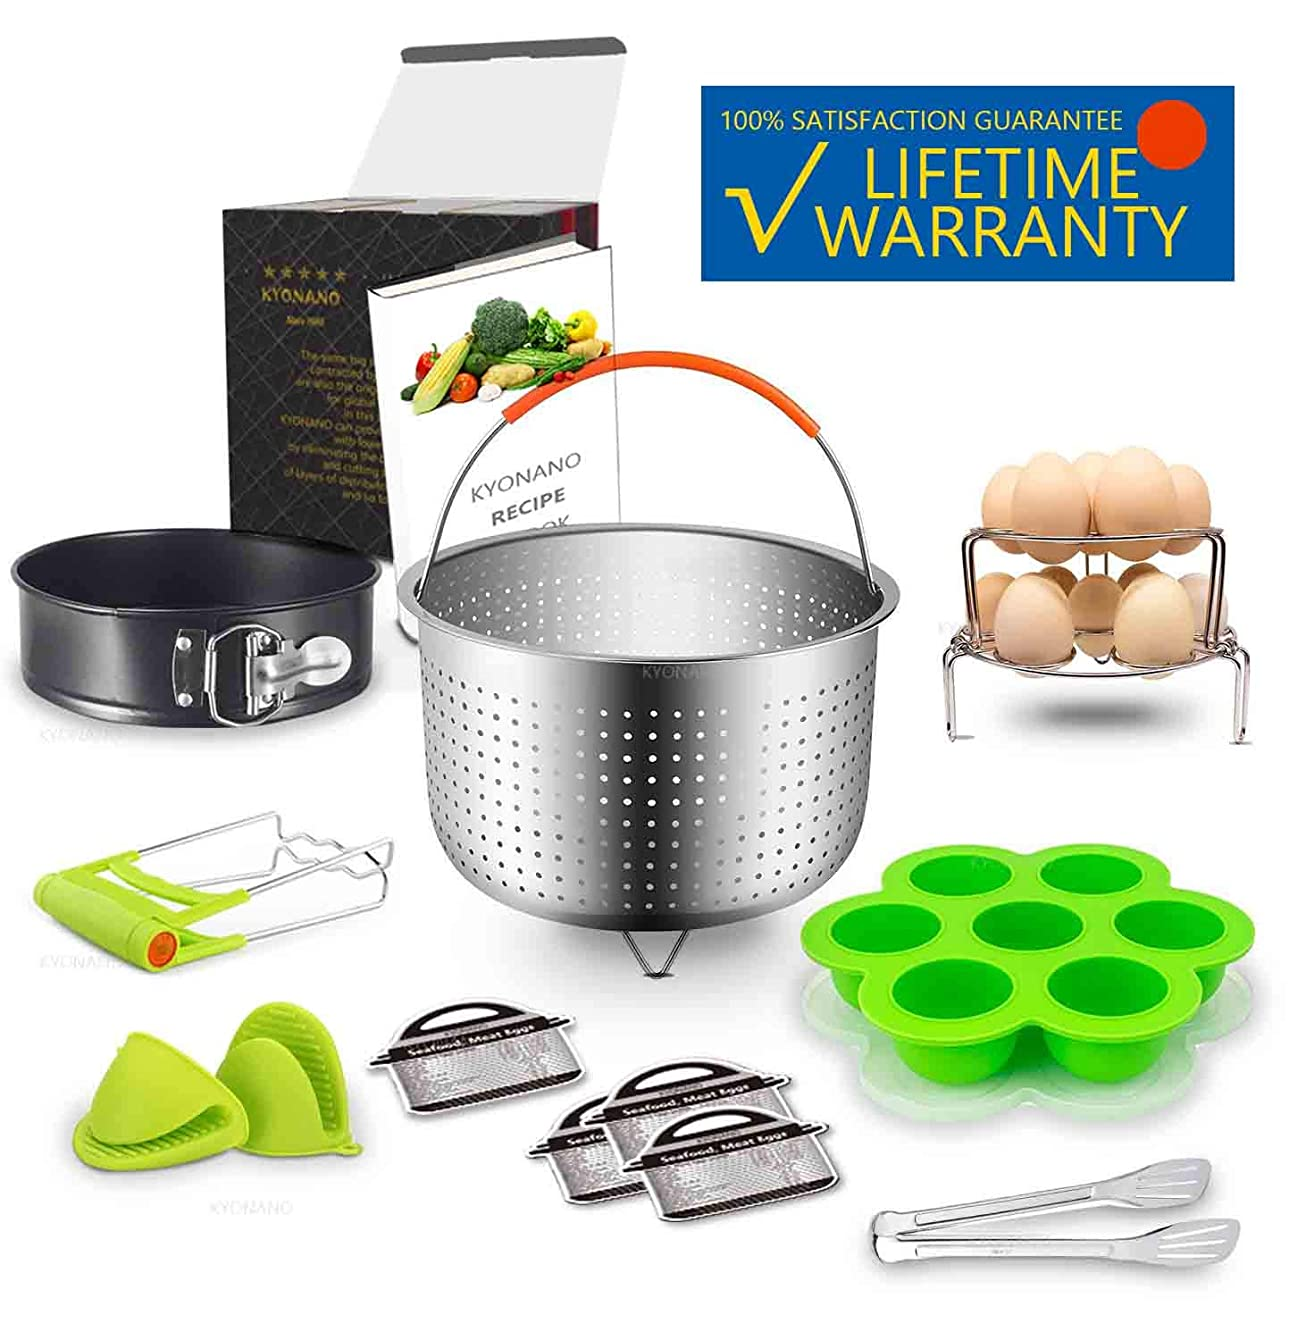 Kyonano 13 Pcs Pressure Cooker Accessories Compatible with Instant Pot 5,6,8QT, Ninja Foodi and Other Electric Pressure Cookers, Include Steamer Basket, Springform Pan, Silicone Egg Bites Molds